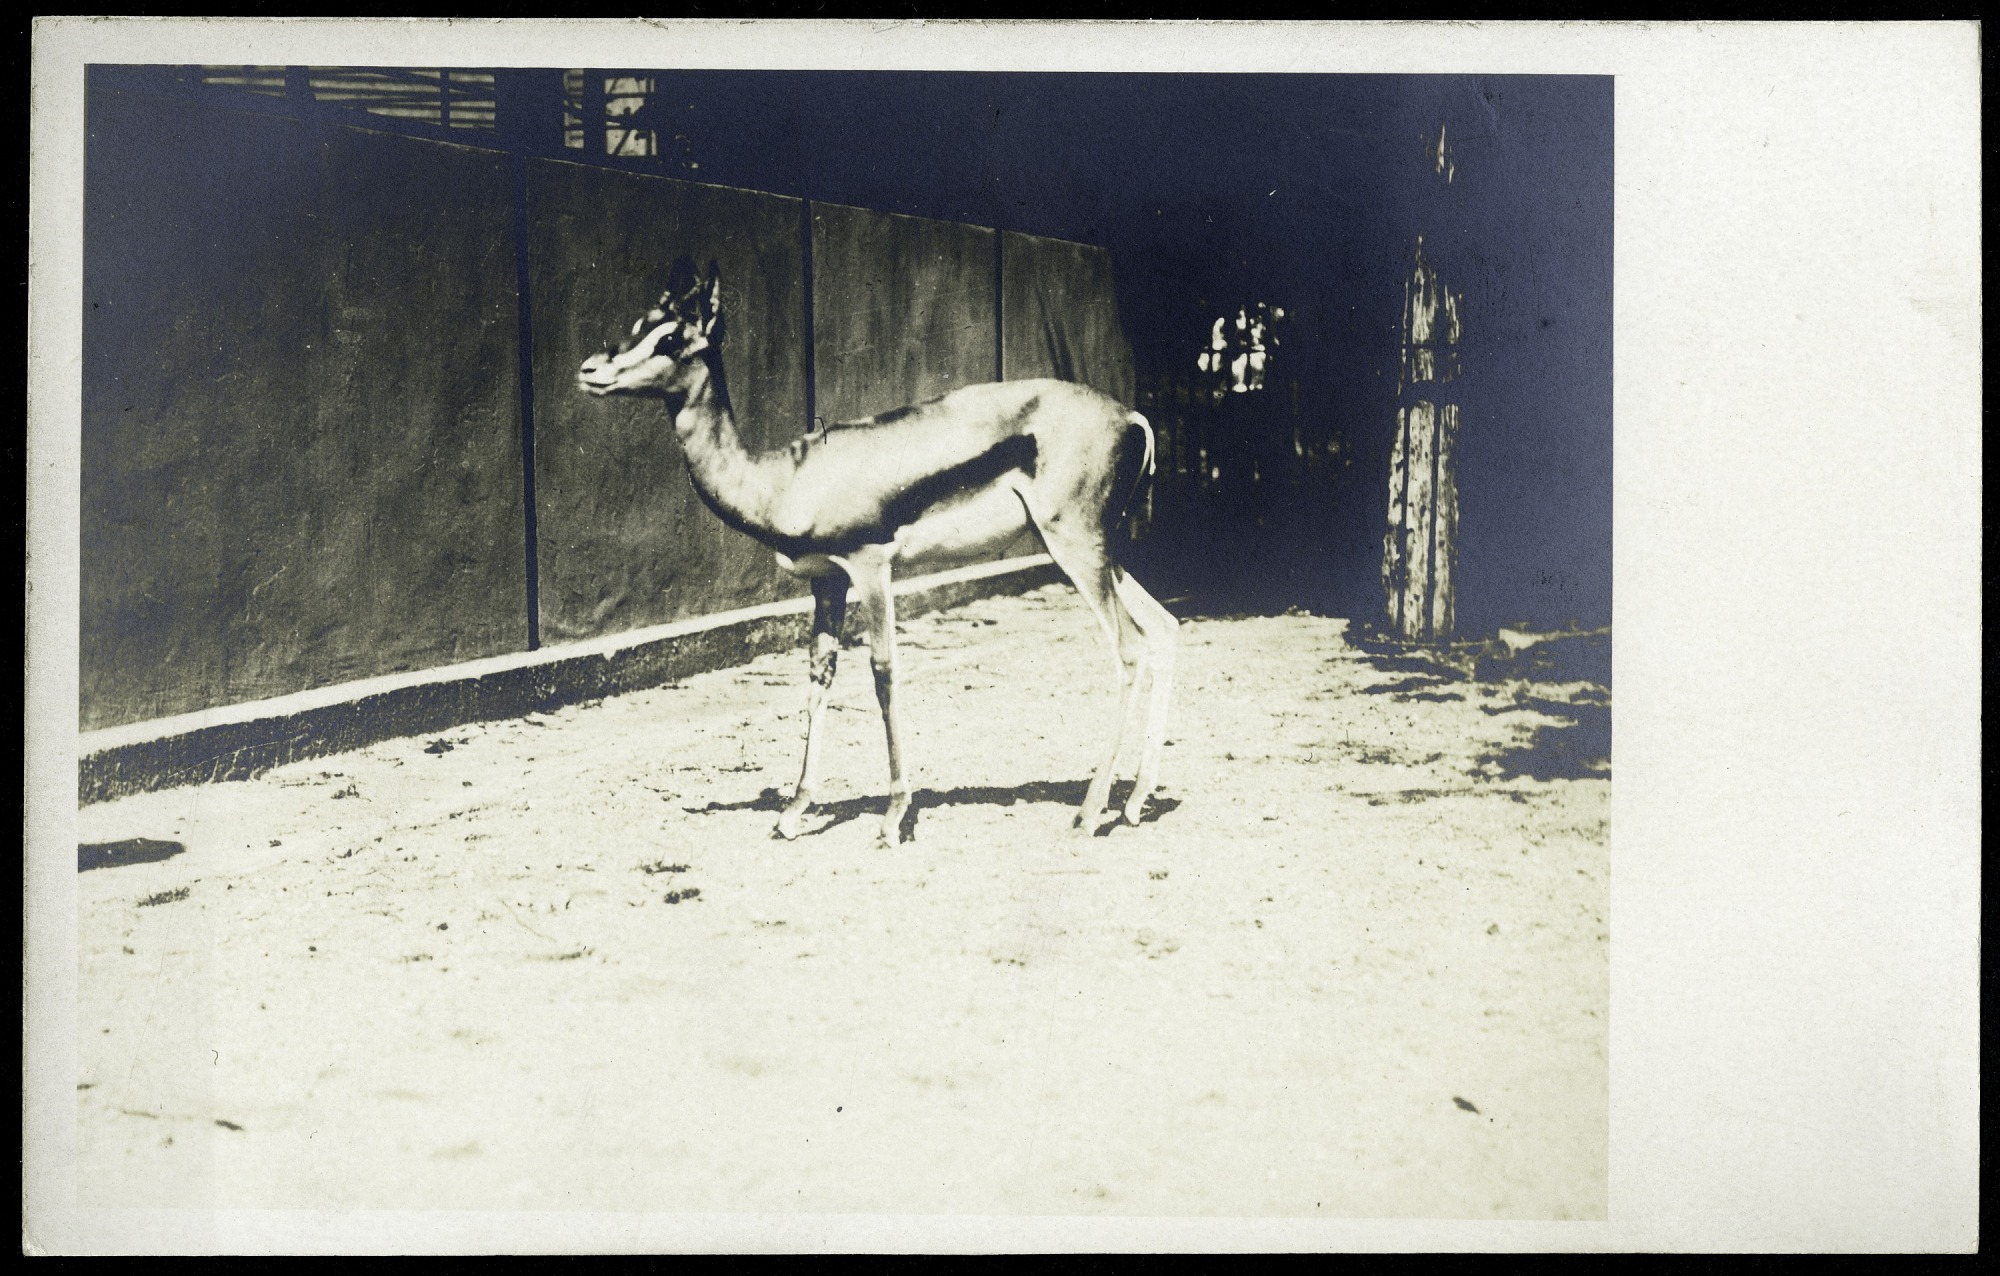 Postcard of a Gazelle